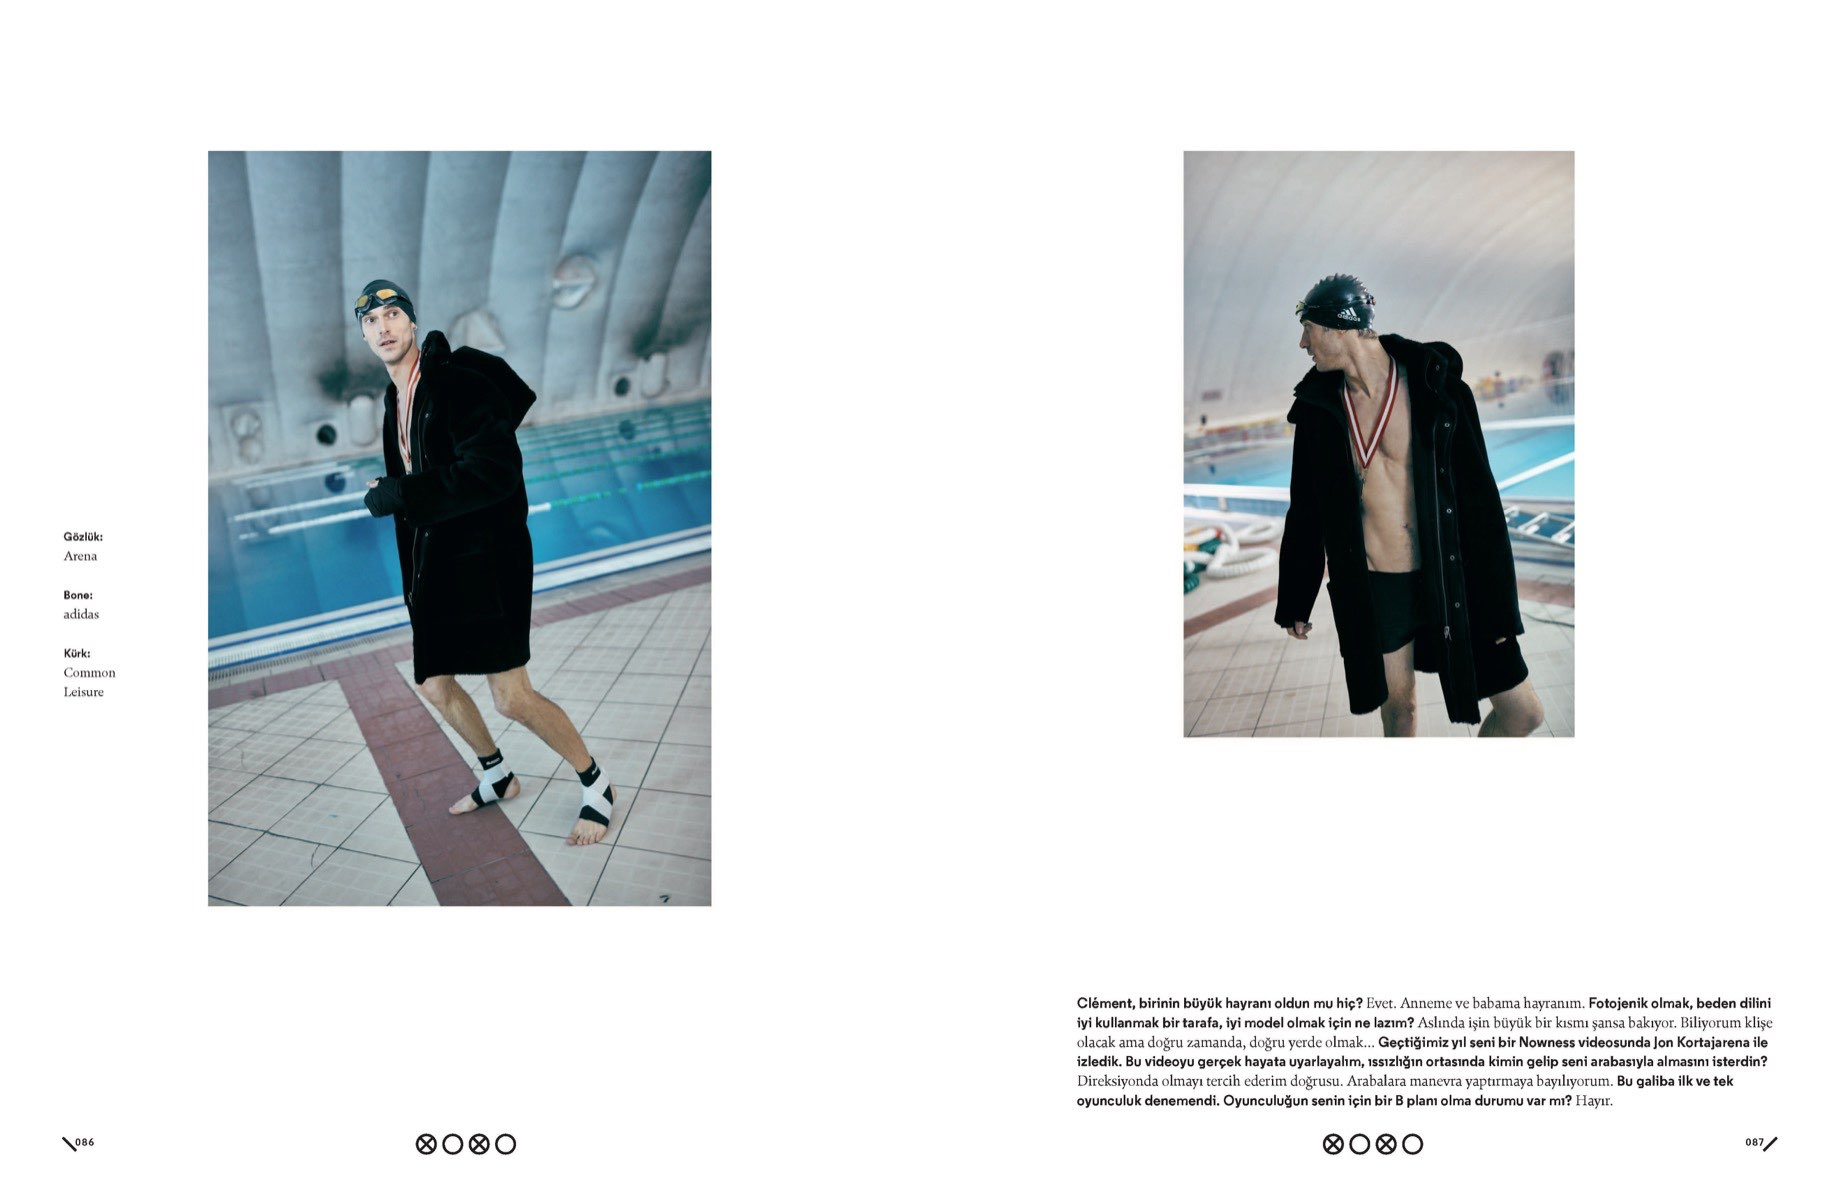 CLEMENT FOR XOXO THE MAG